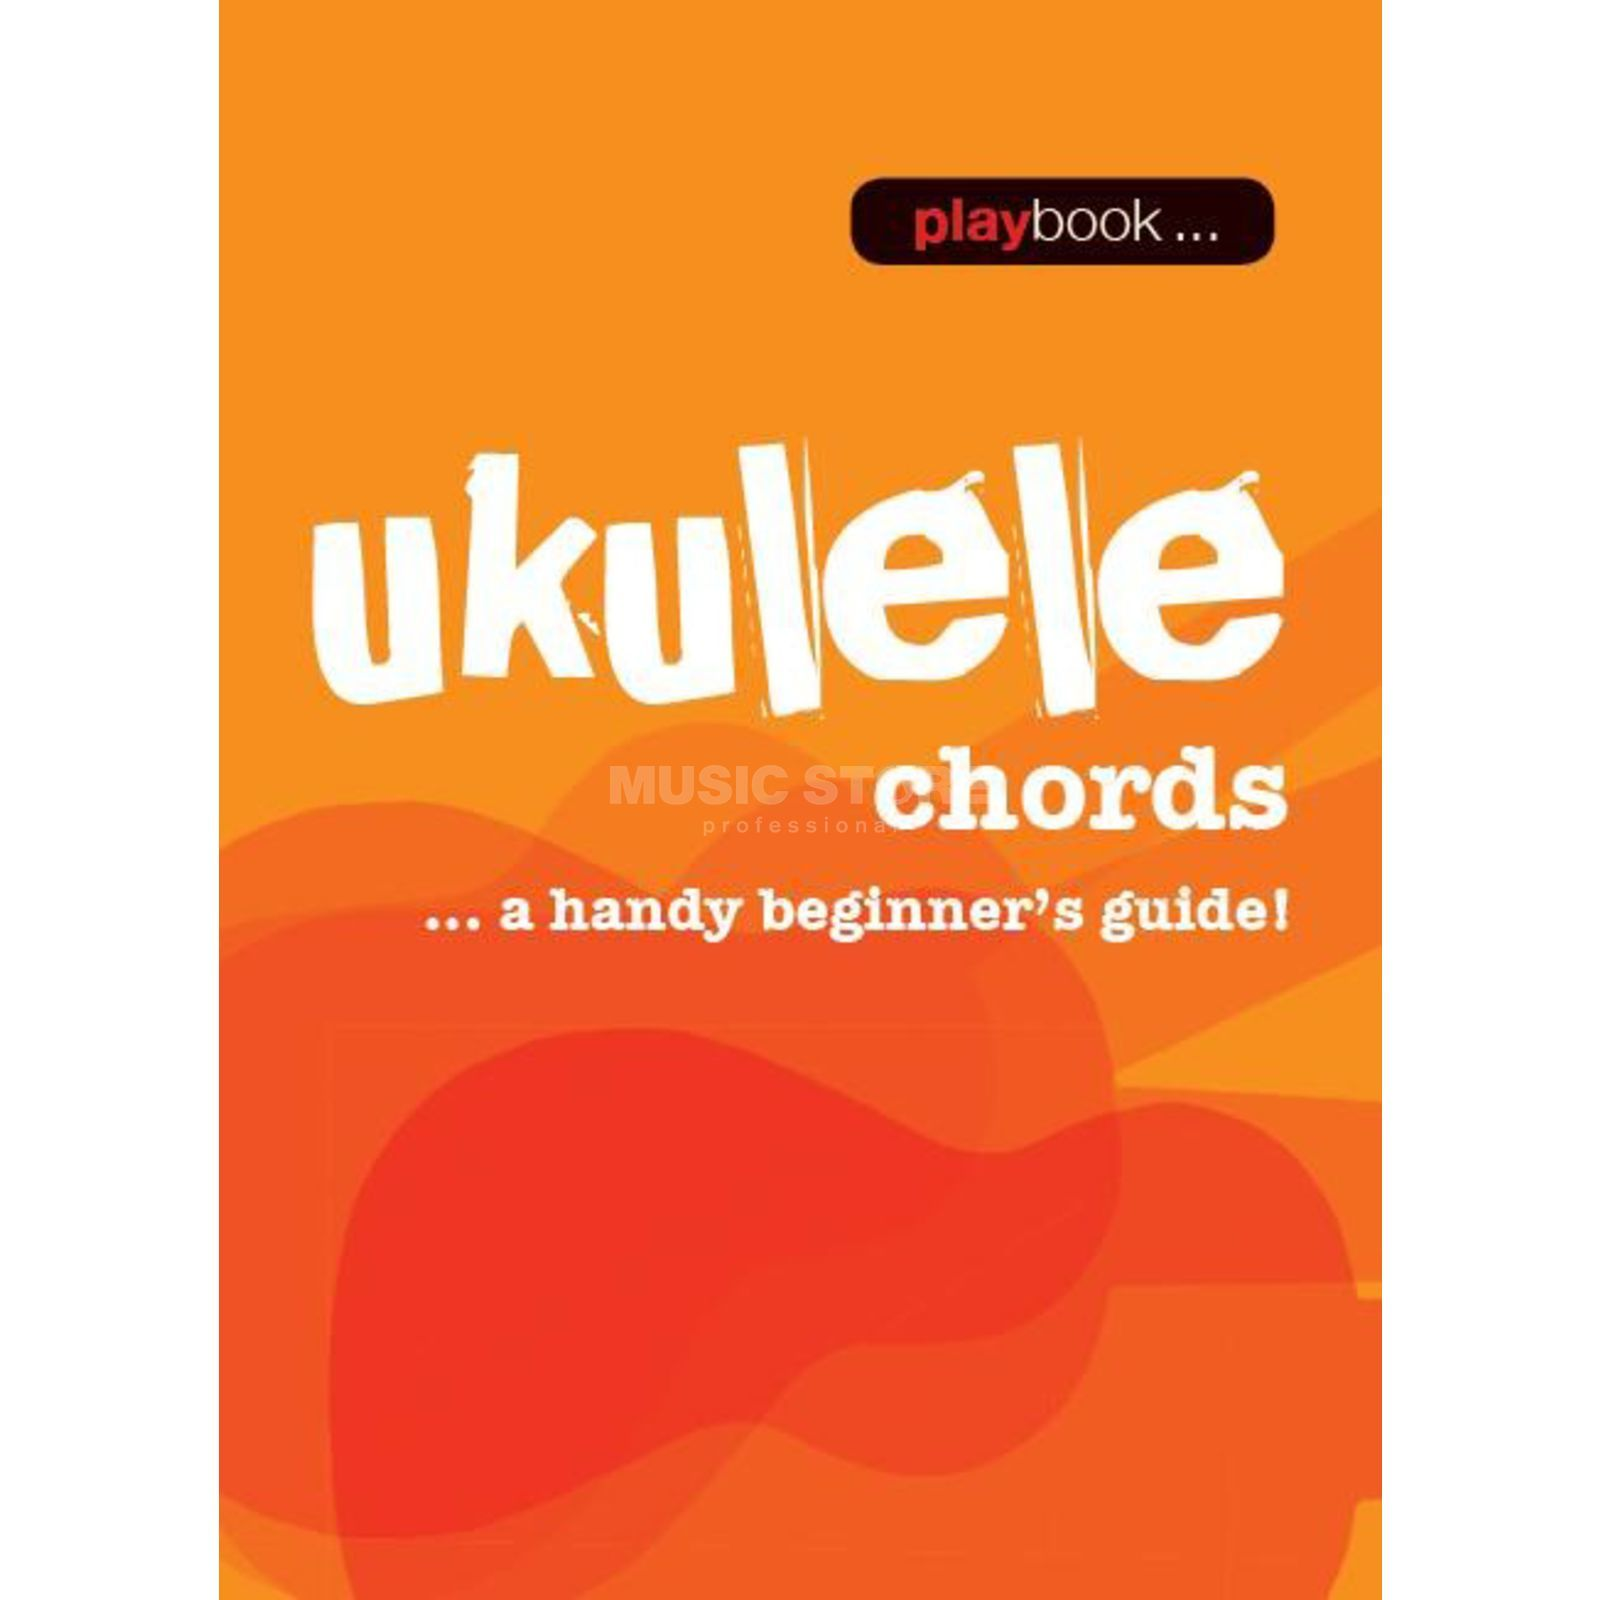 Wise Publications Playbook: Ukulele Chords A Handy Beginner's Guide! Produktbild